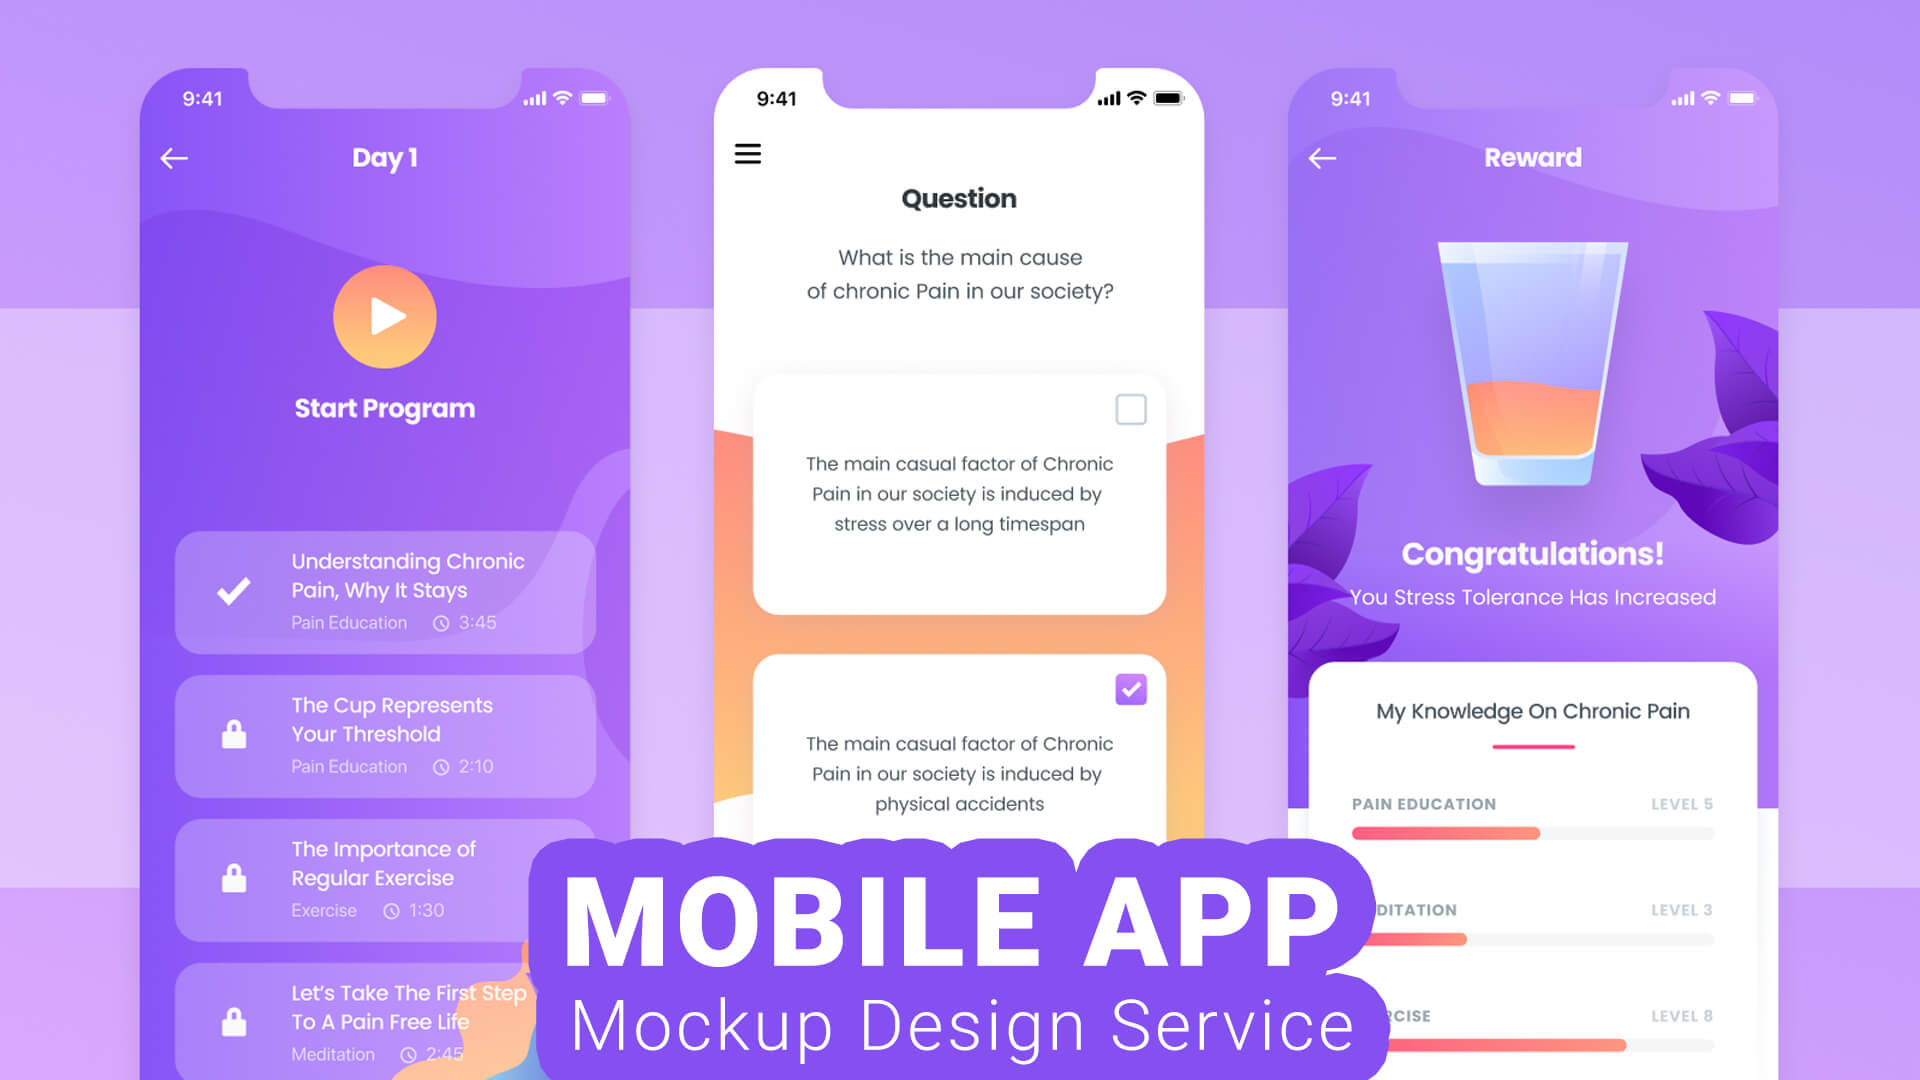 Best Mobile App Mockup Design Service Provider Company in India